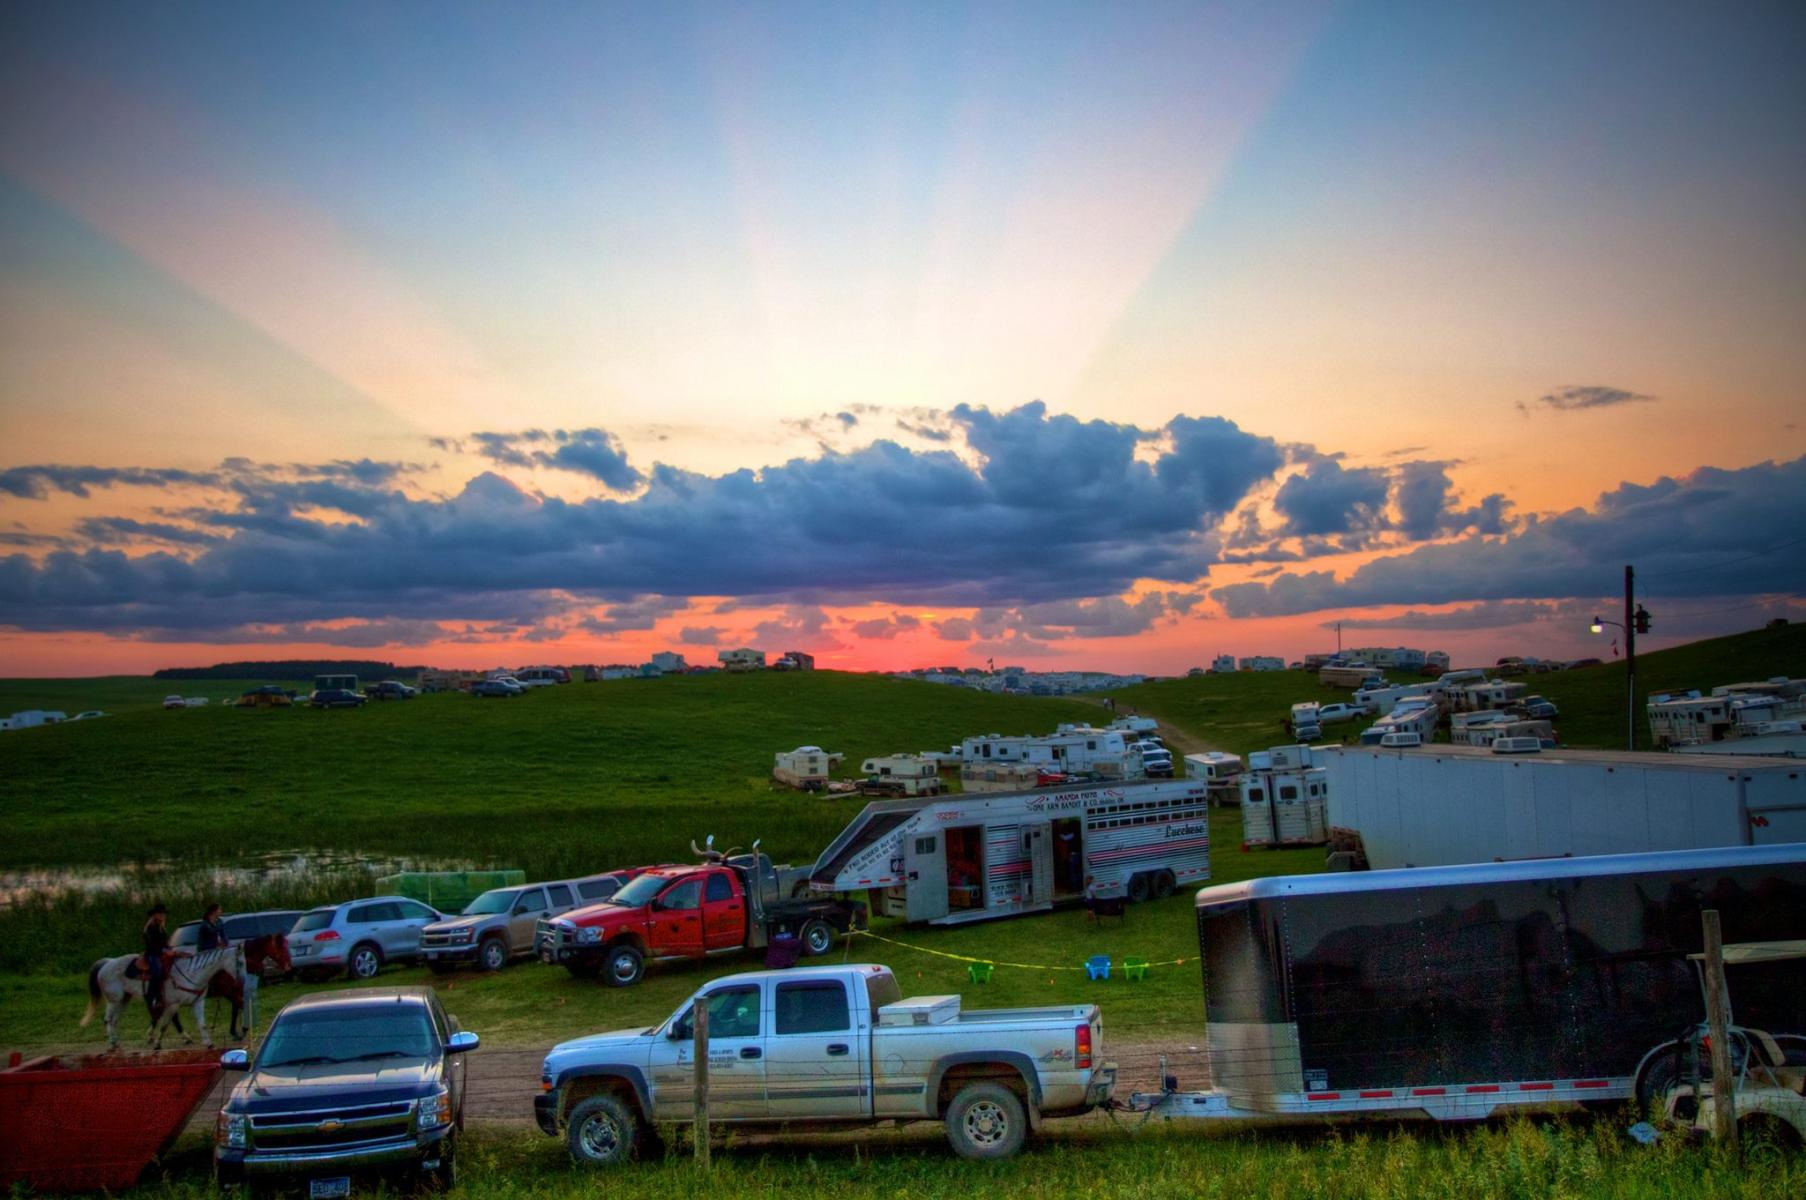 Camping and Sunset